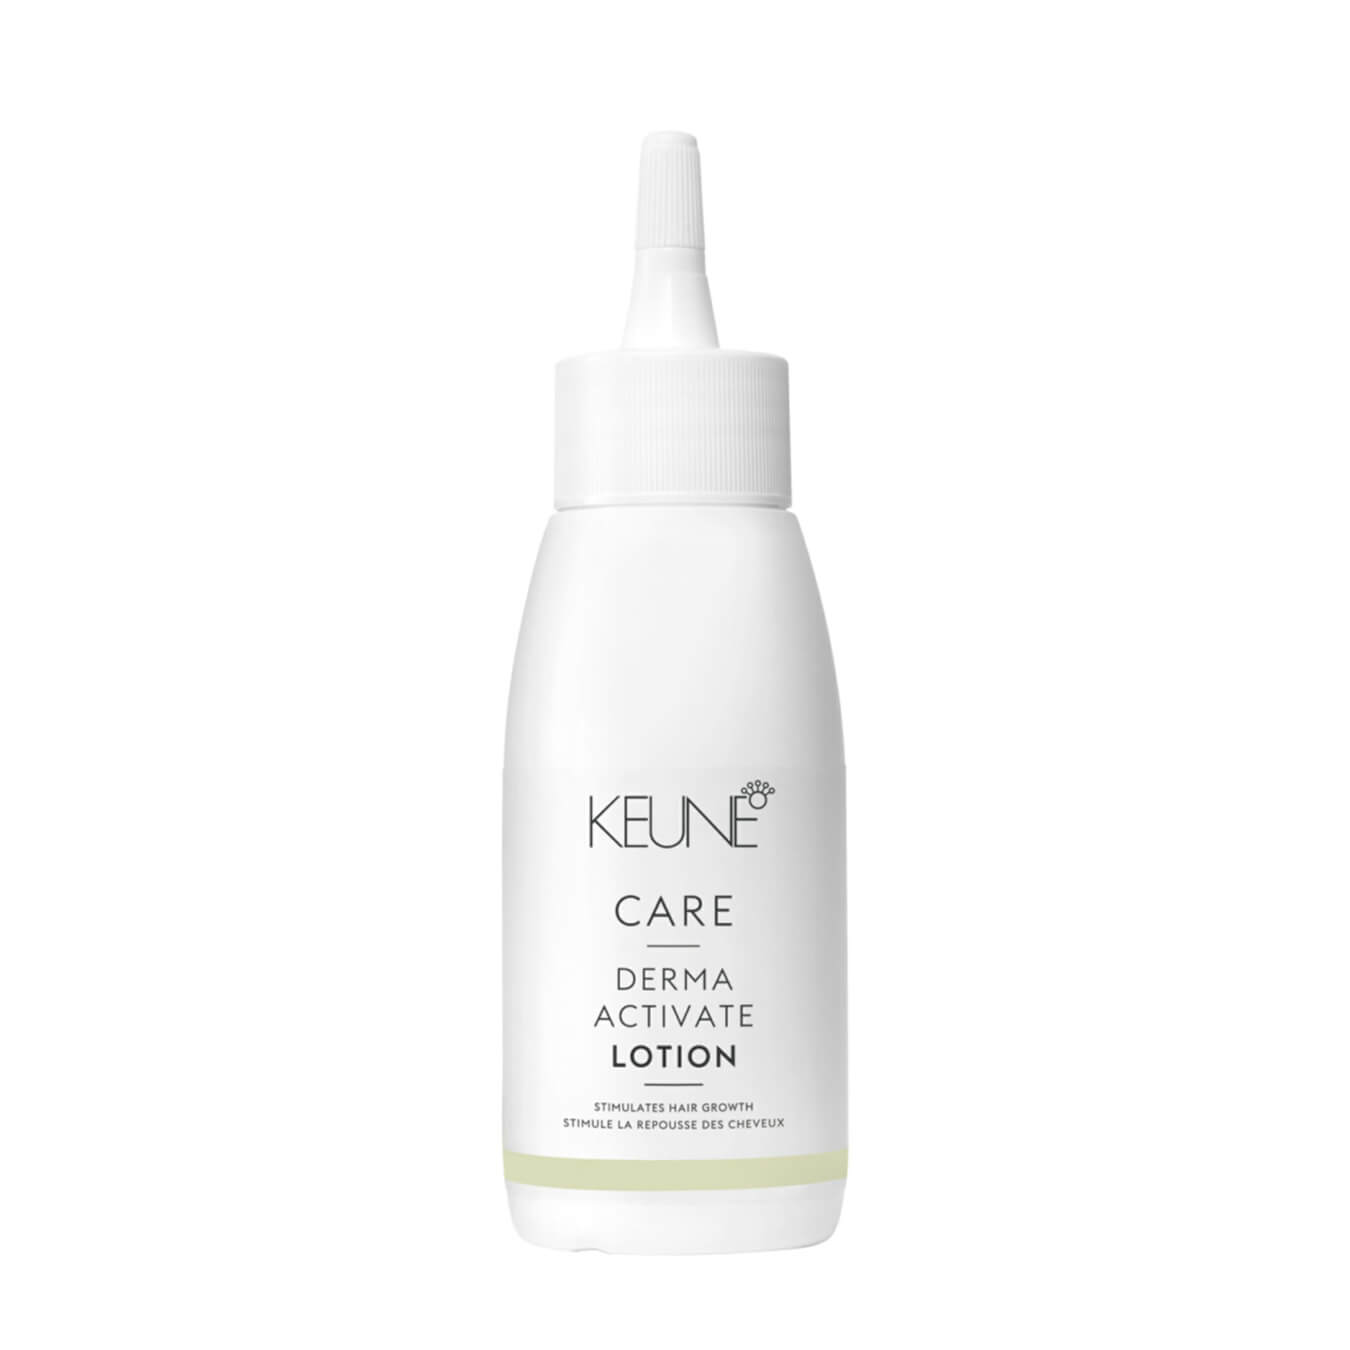 Koop Keune Care Derma Activate Lotion 75ml